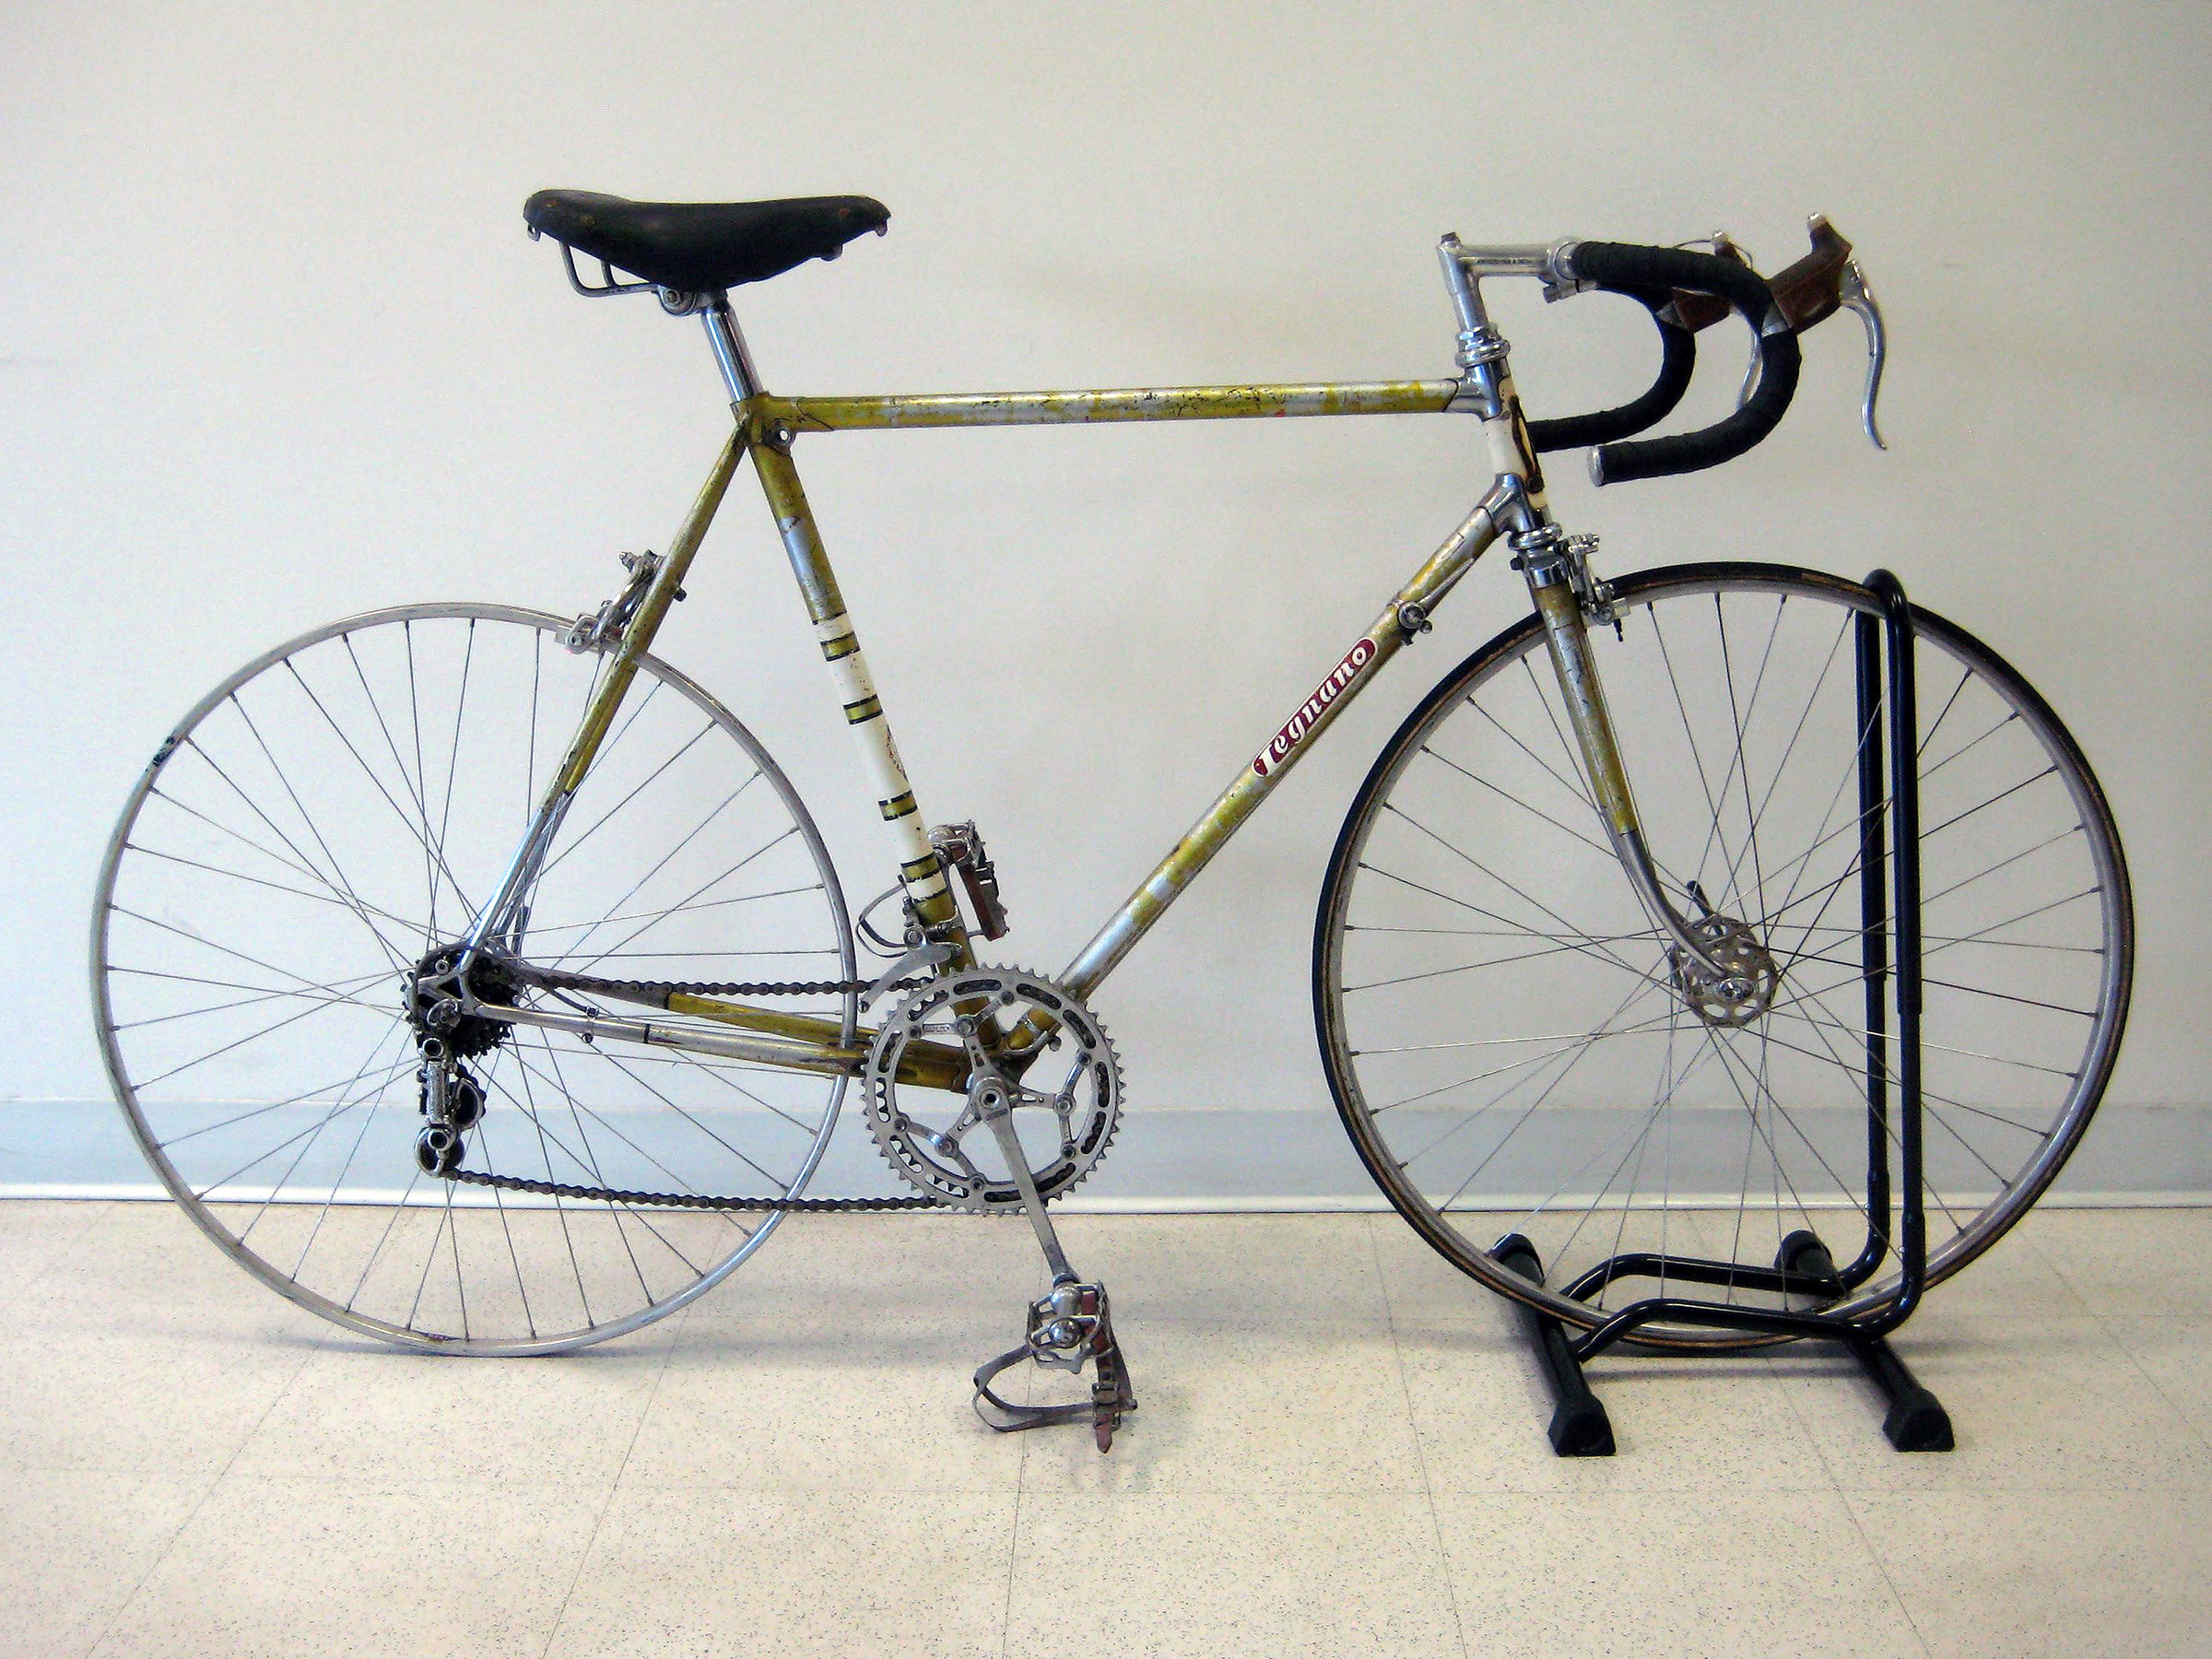 How to disassemble a bicycle